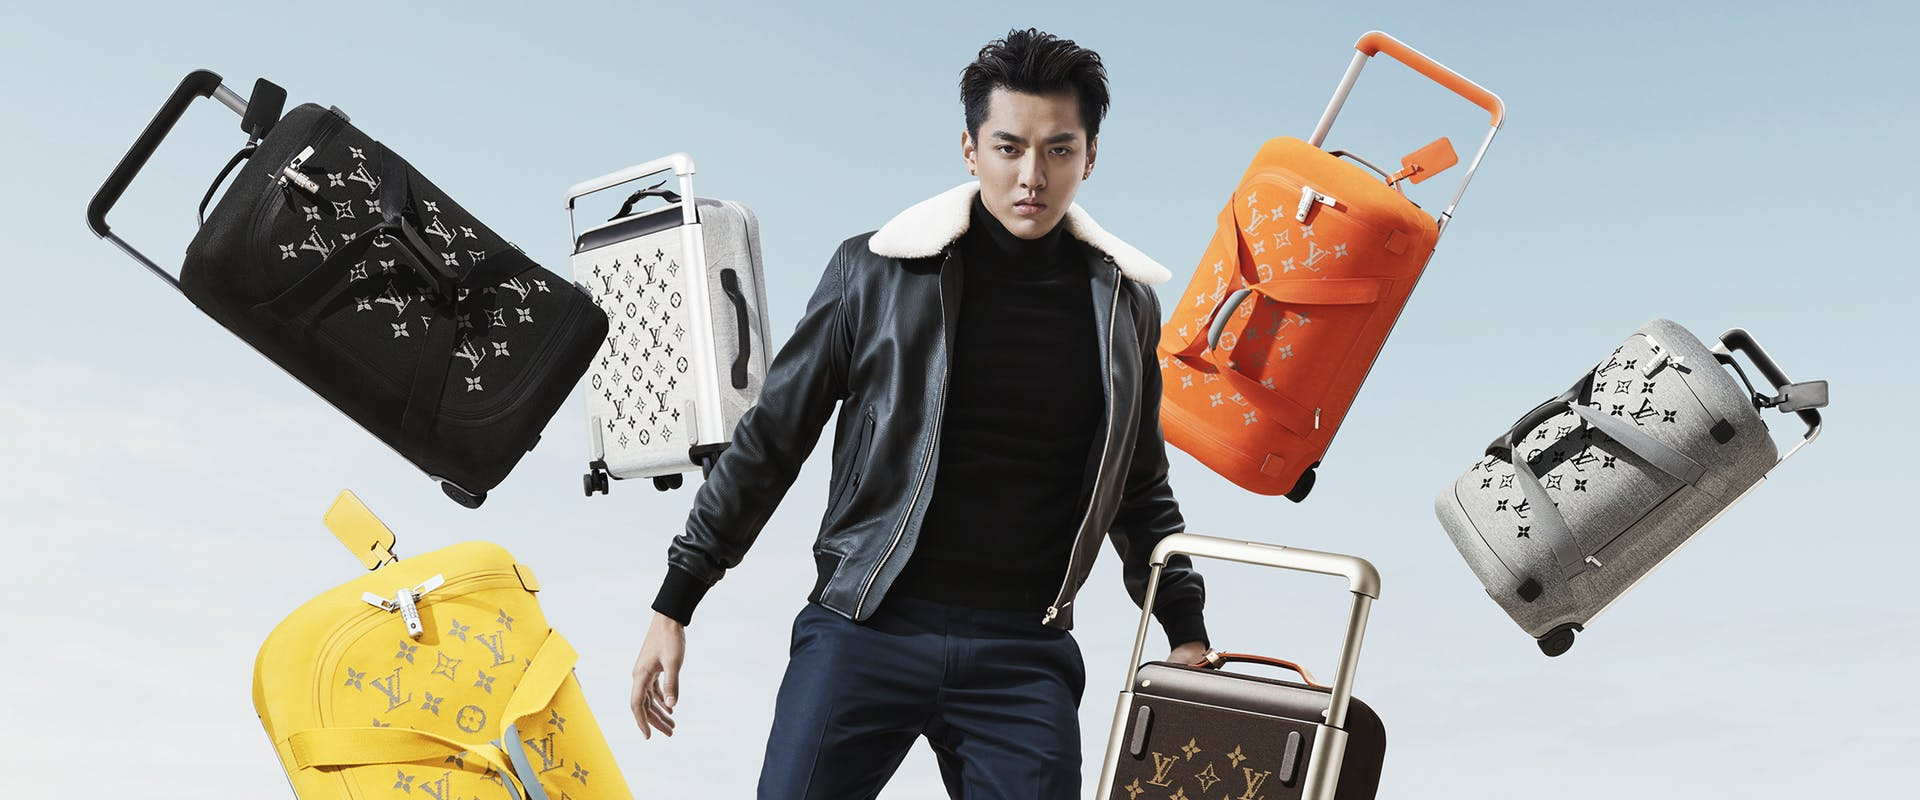 Louis Vuitton luggage campaign 2019